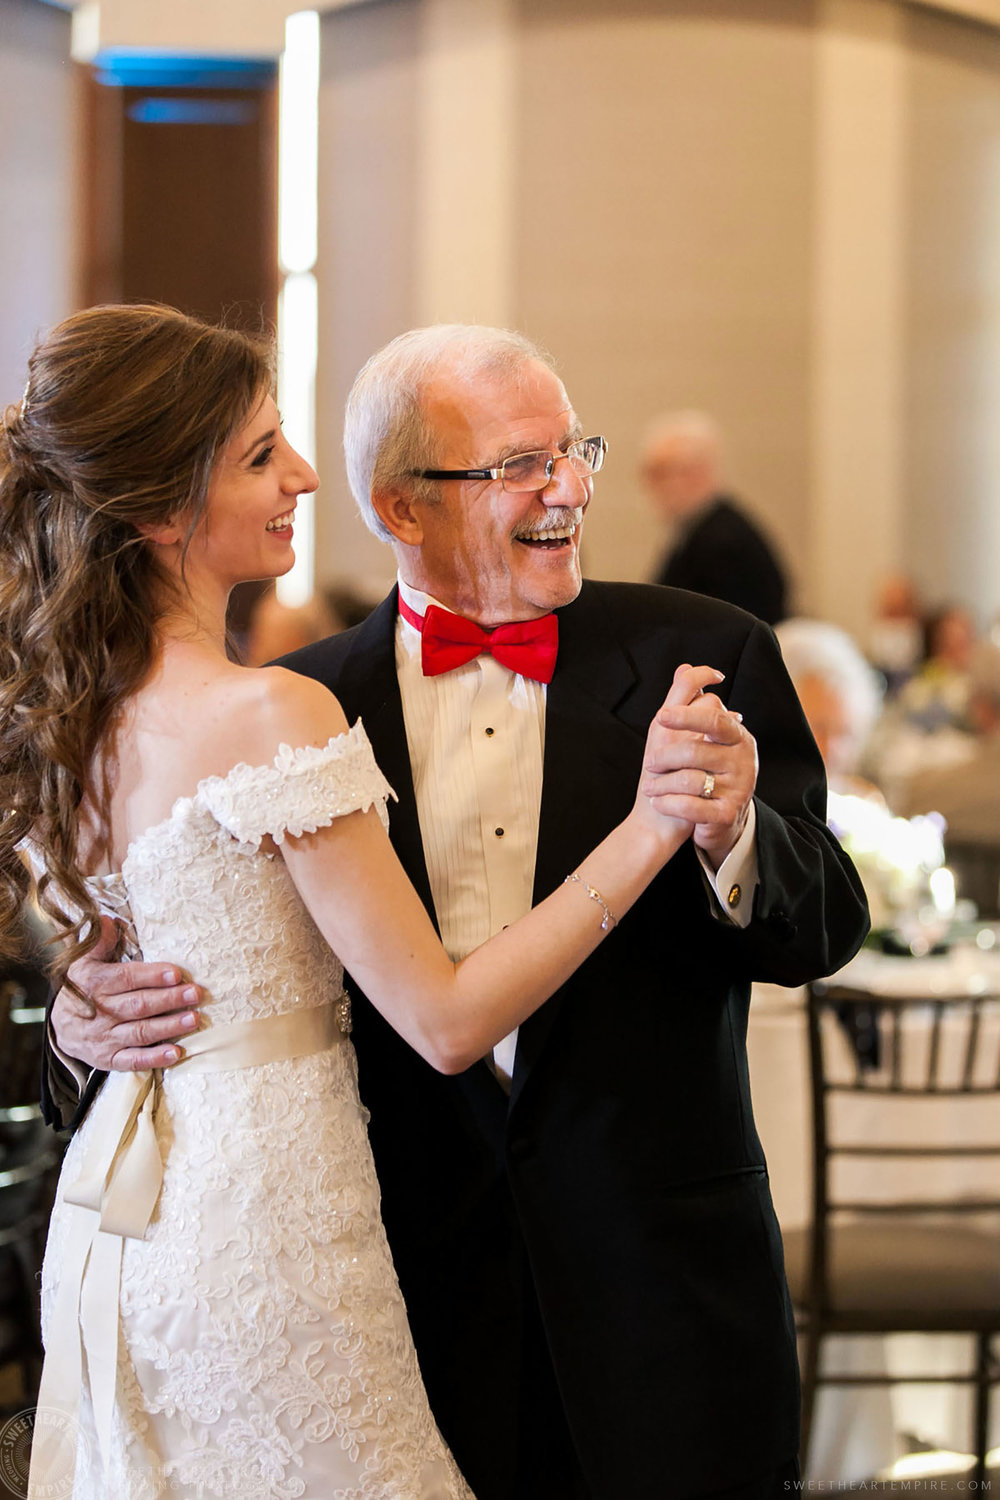 Bride dancing with her father, Eagles Nest Golf Club Wedding